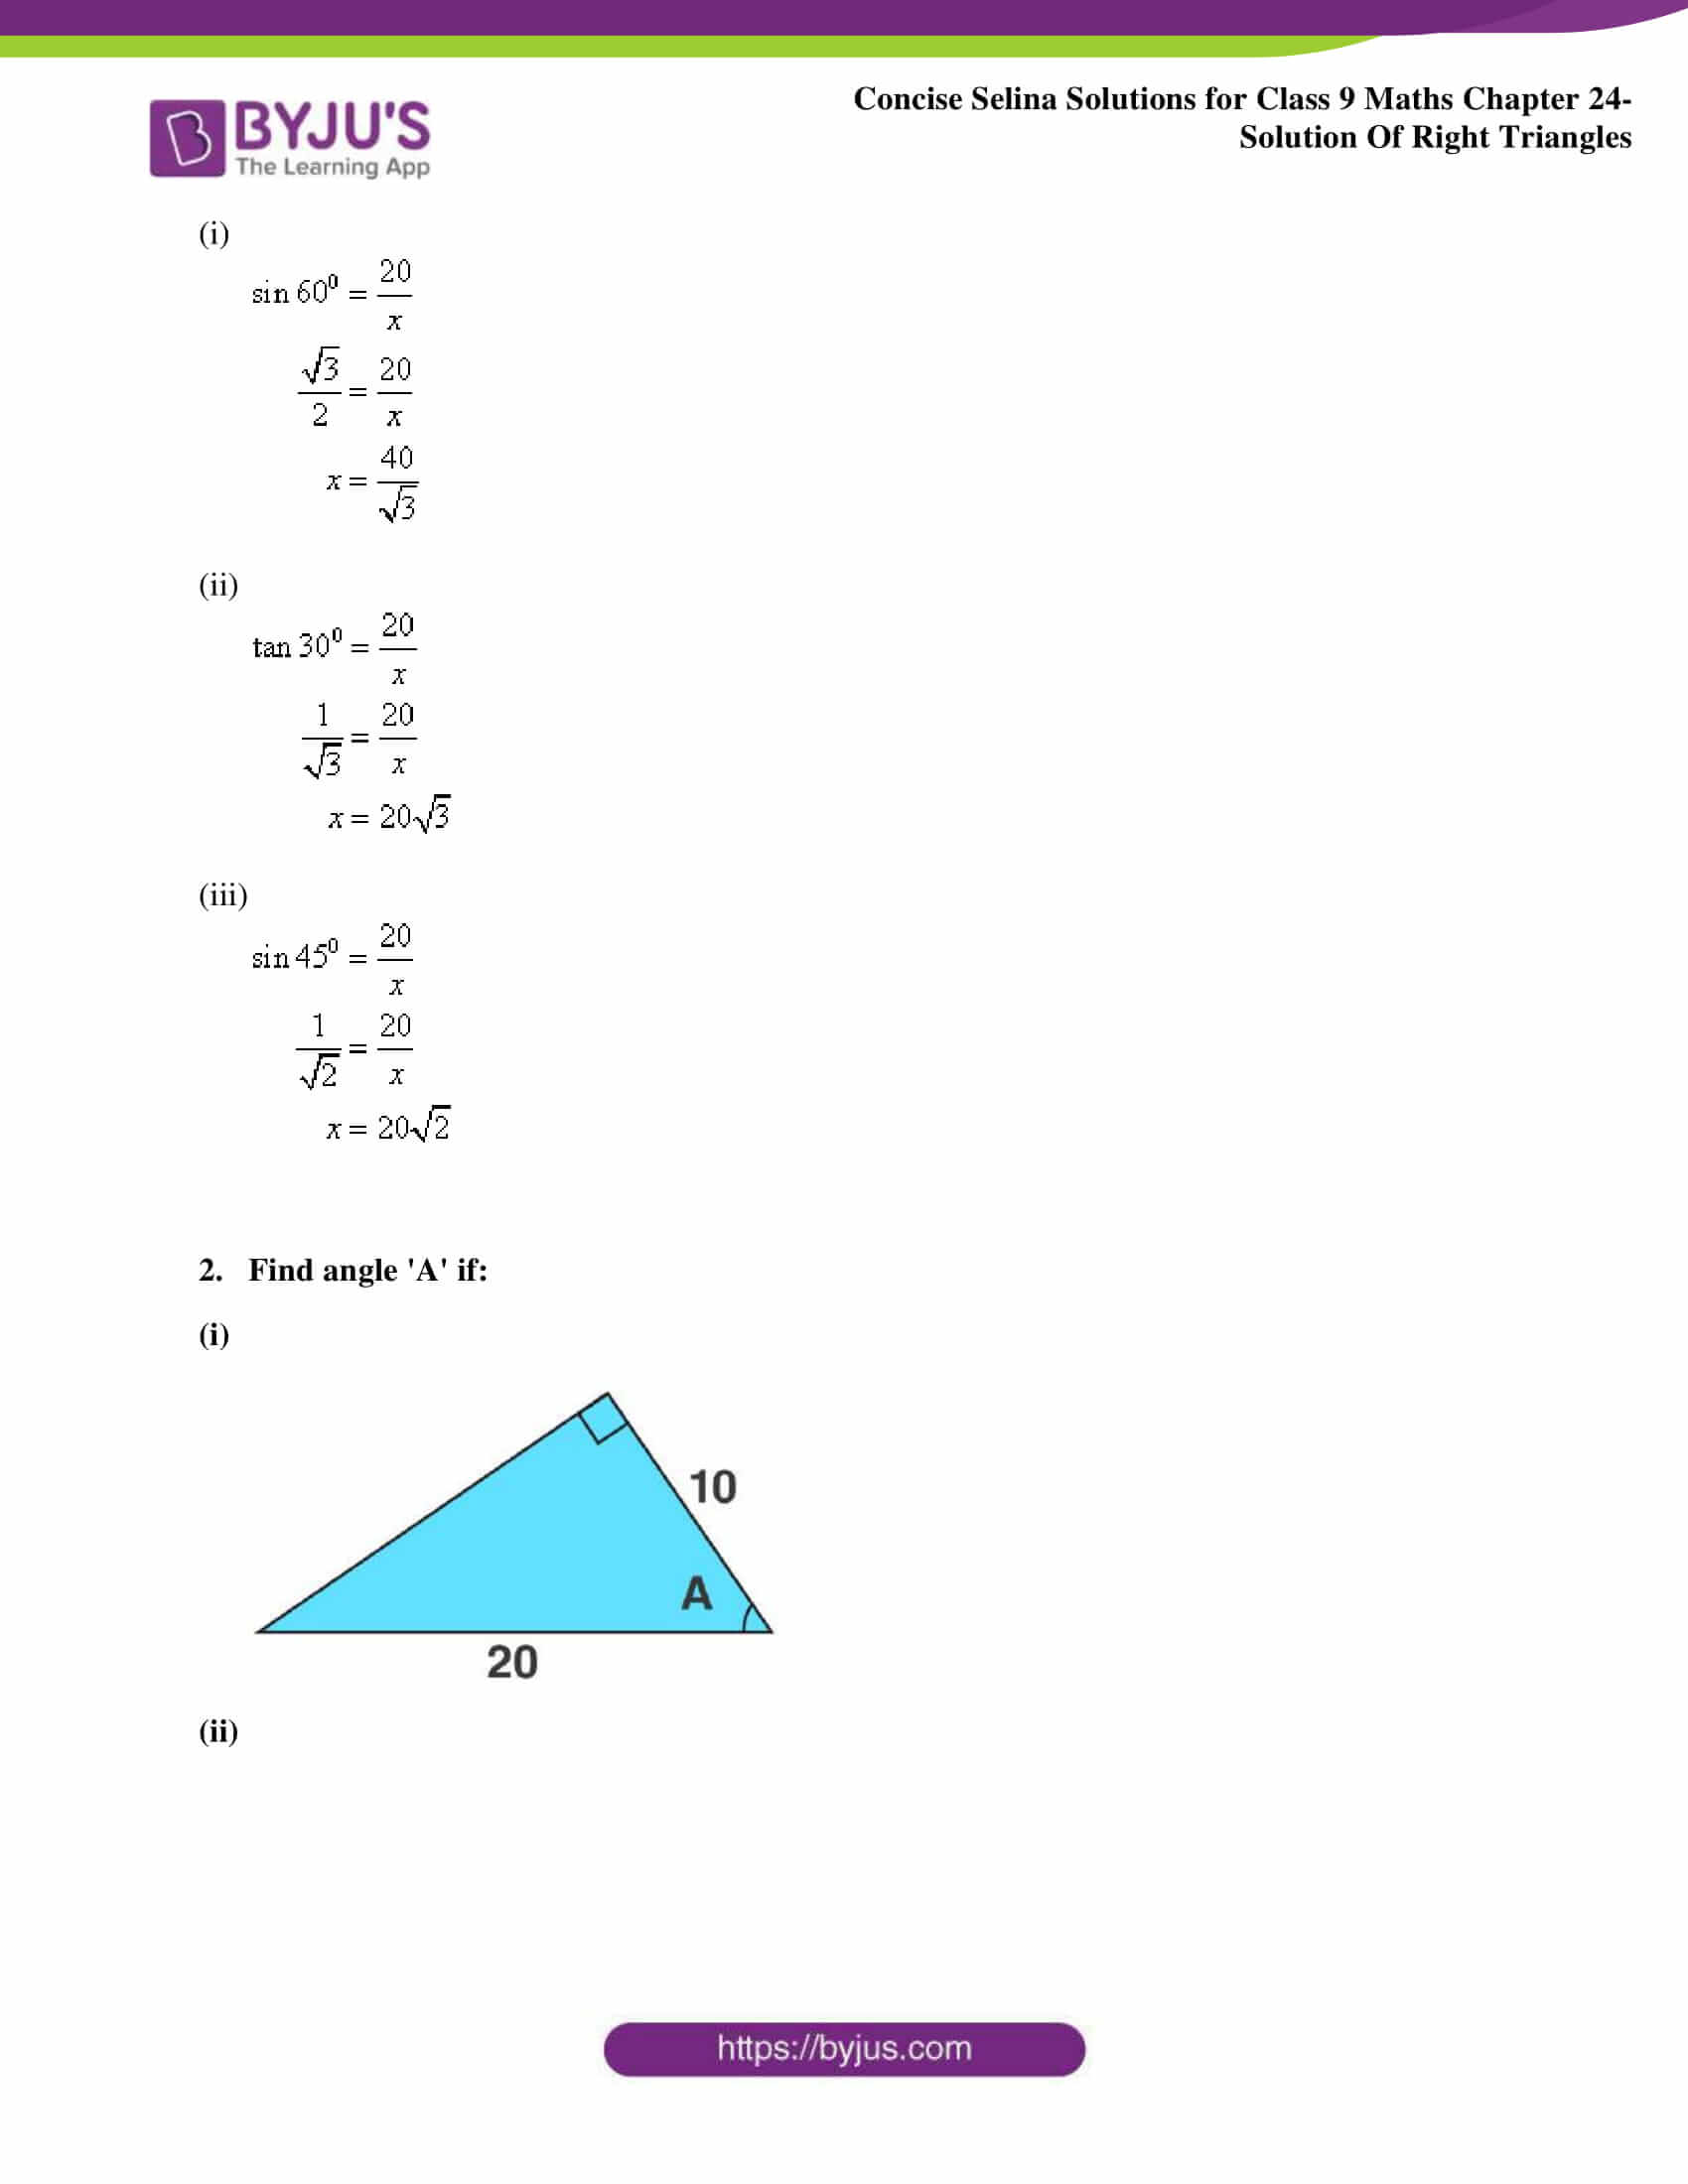 Concise Selina Solutions Class 9 Maths Chapter 24 Solution Of Right Triangles part 02